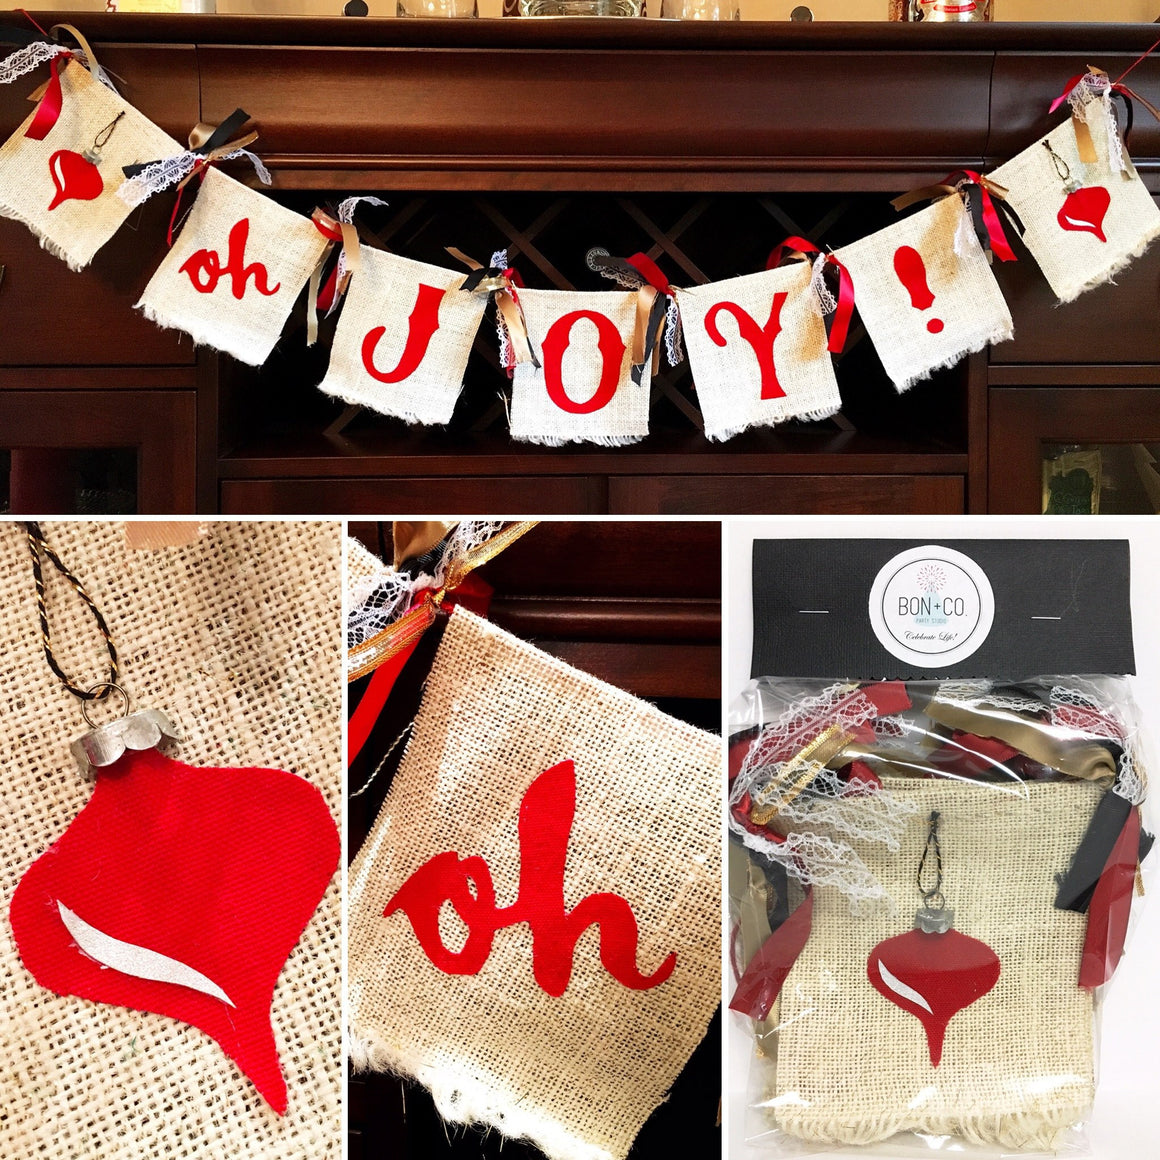 SPECIALTY GARLAND - OH JOY BURLAP